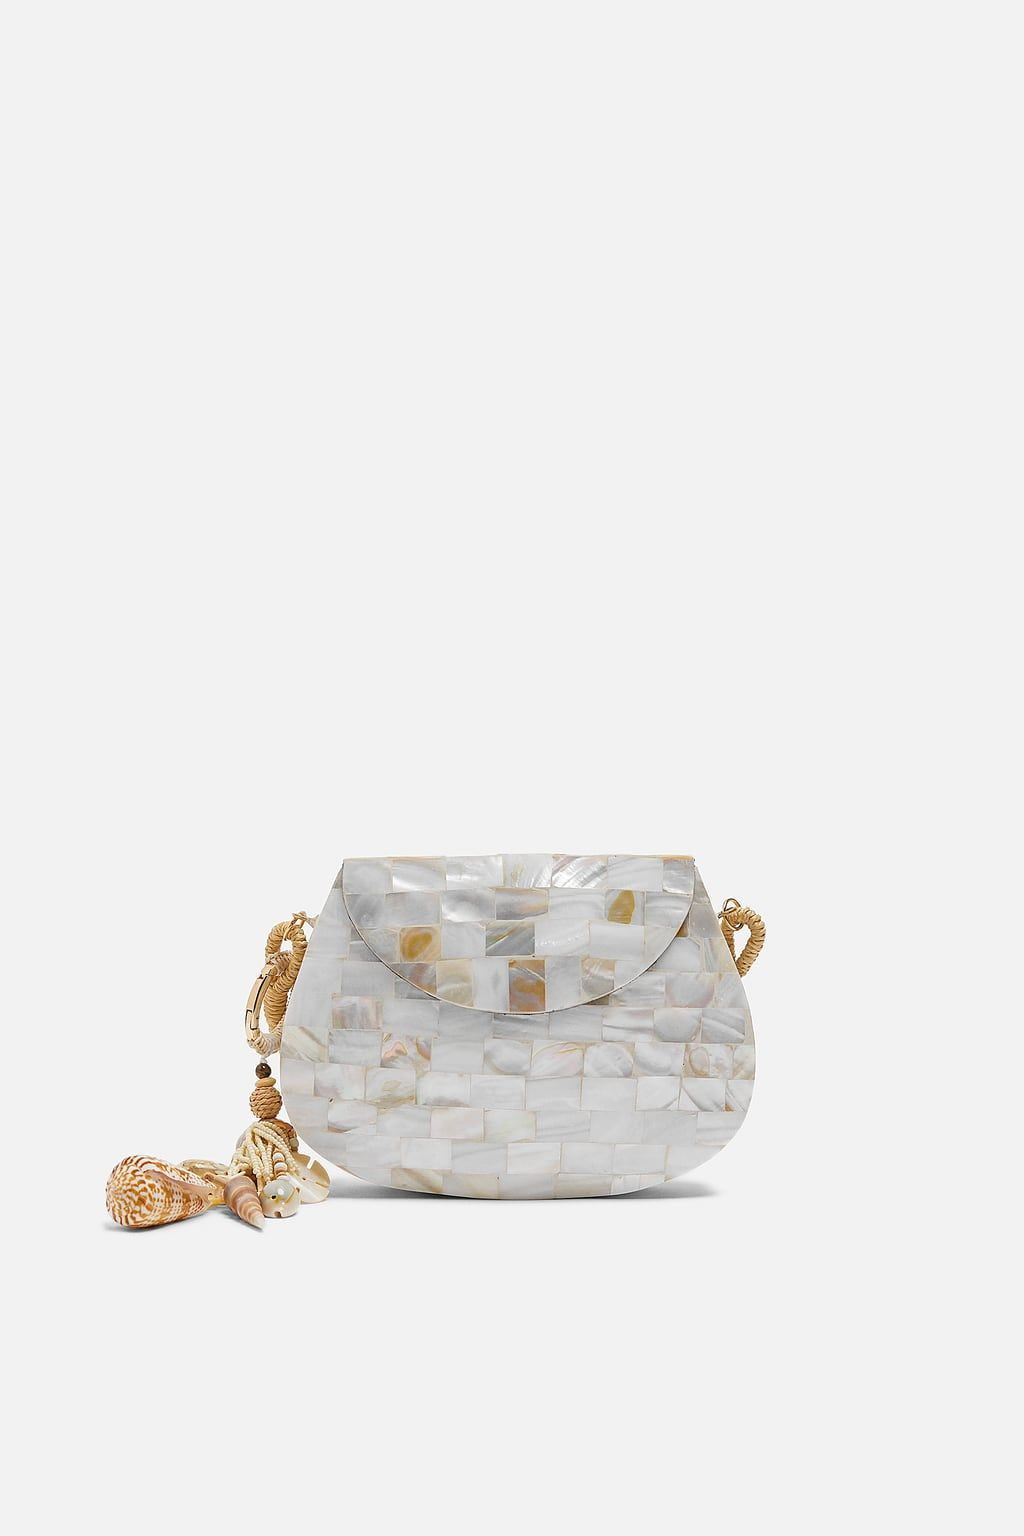 c56f4d9f0a Mother of pearl effect crossbody bag in 2019 | color trend forecast ...